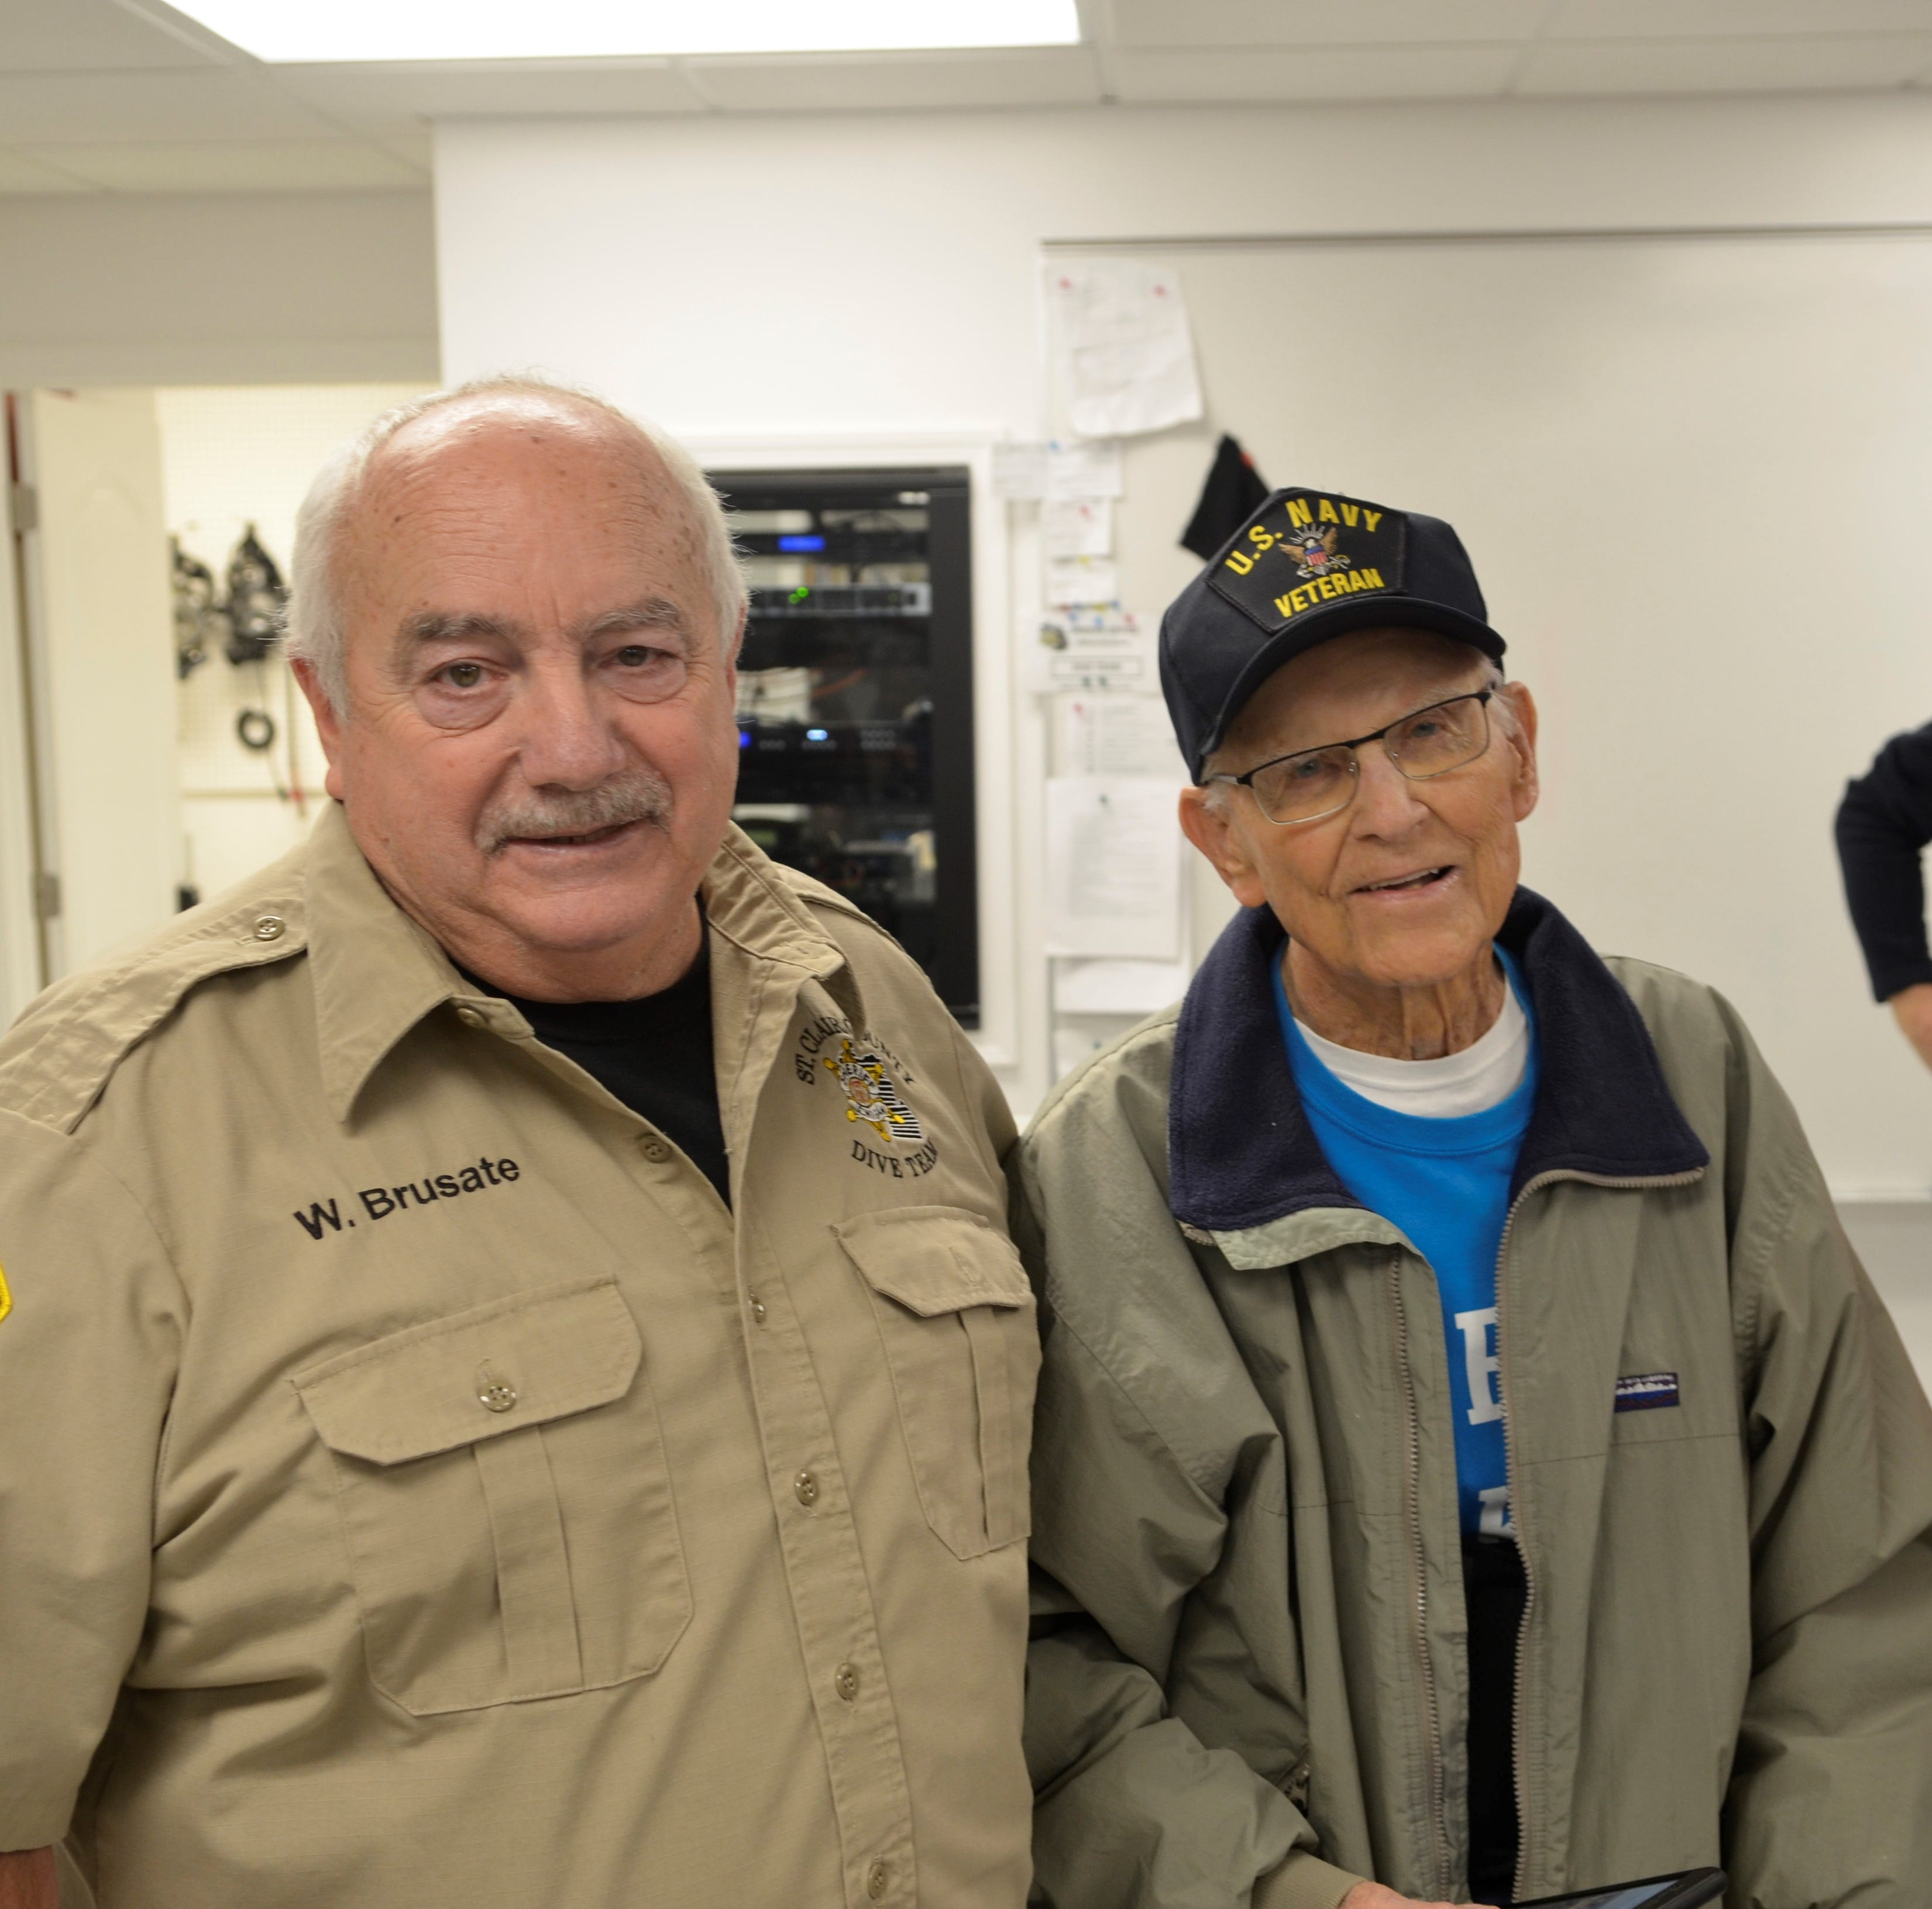 From left, Wayne Brusate and Don Evans stand together at an open house for the St. Clair County Dive Team on Nov. 18, 2018, in Marysville, Michigan. . The team is working to learn more about its early years and to recruit new members.